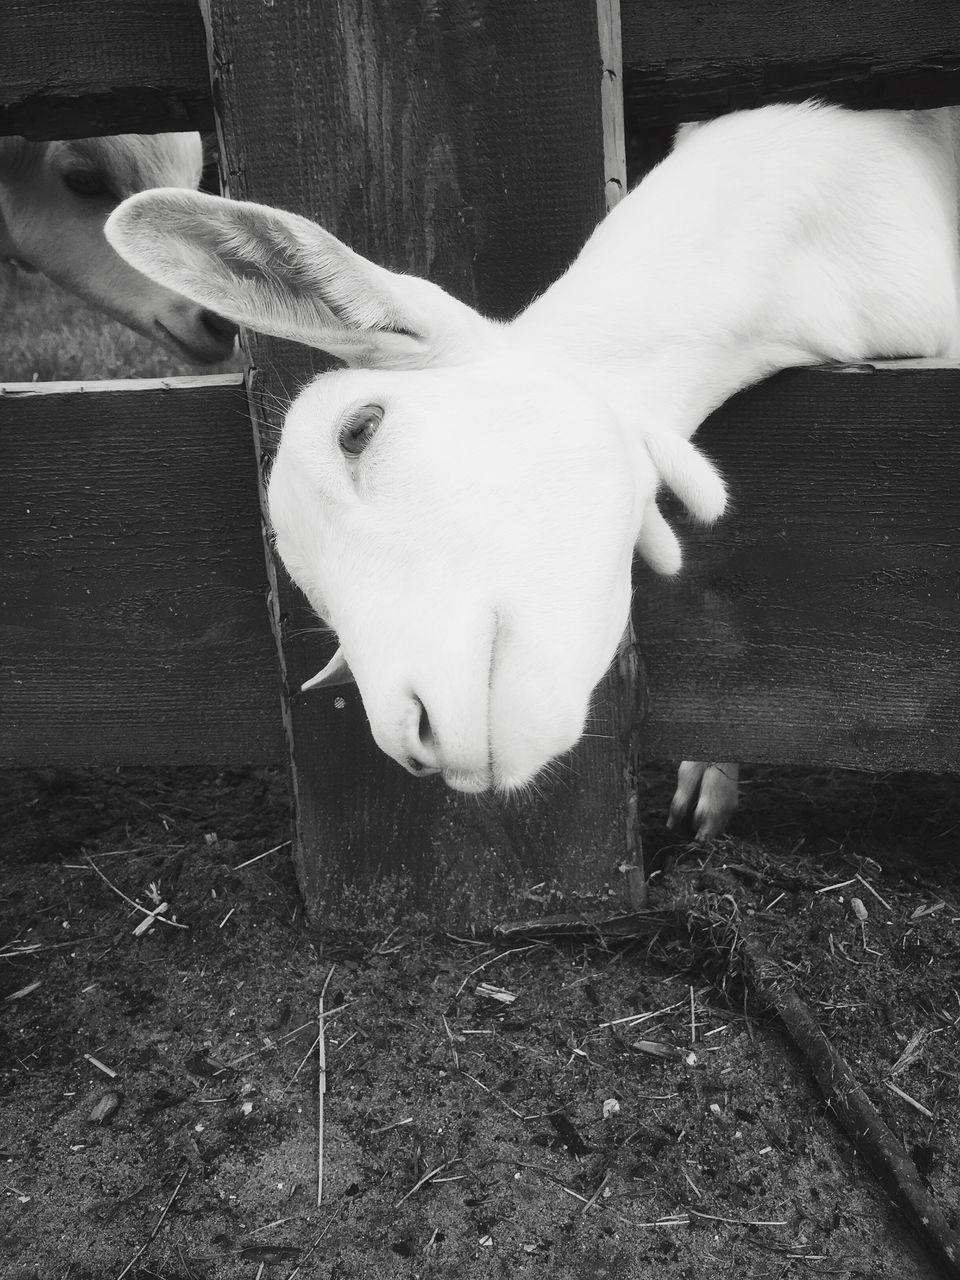 mammal, domestic, domestic animals, pets, one animal, vertebrate, no people, livestock, rabbit, close-up, high angle view, day, indoors, wood - material, rabbit - animal, animal body part, white color, herbivorous